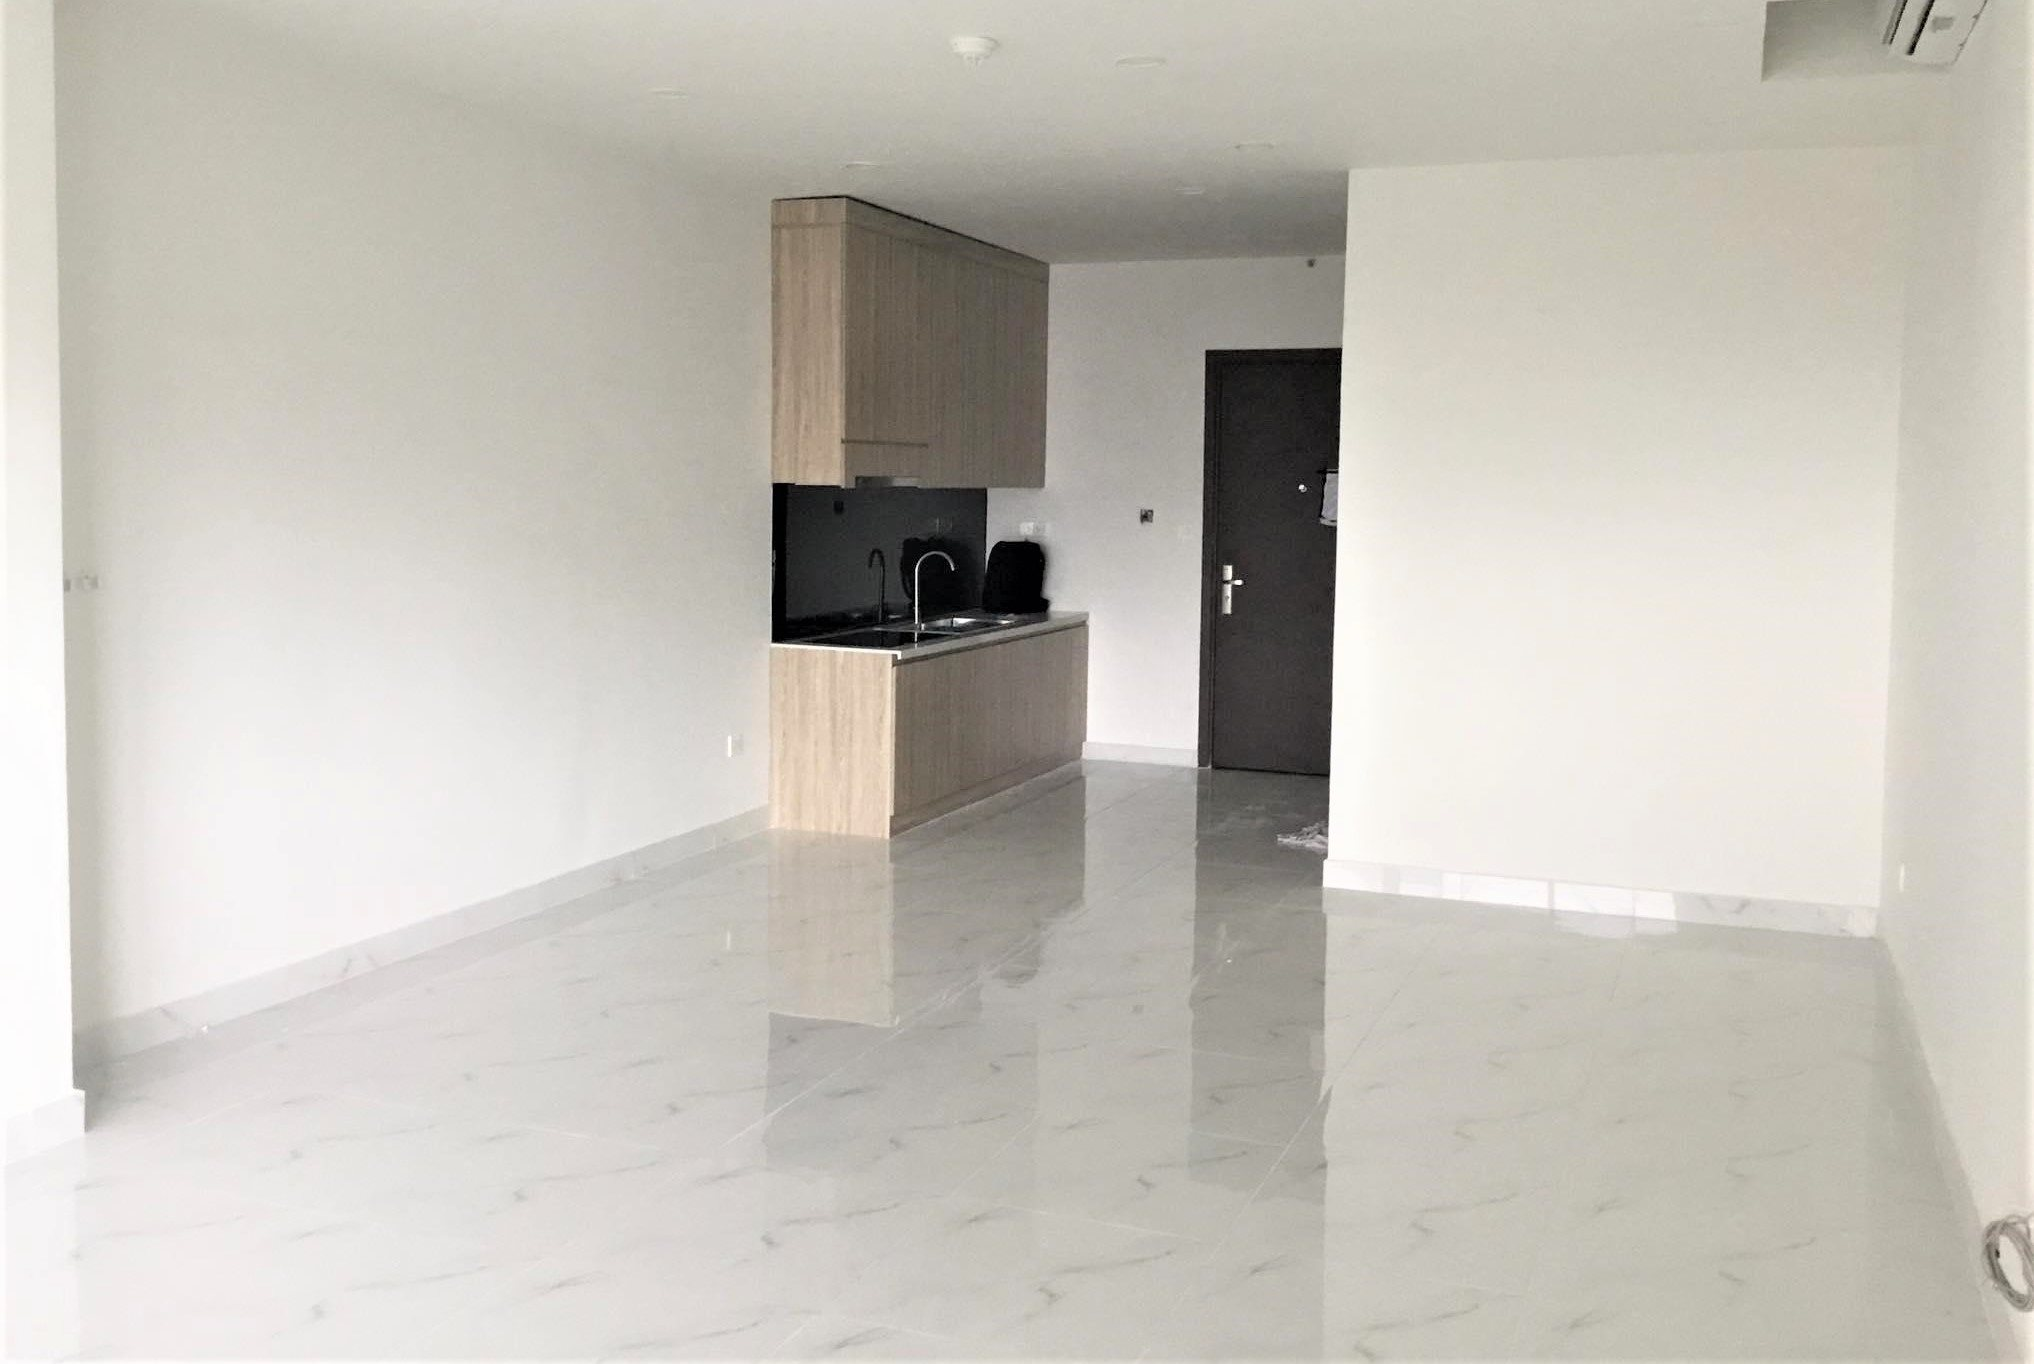 D227382 - APARTMENT FOR RENT - THE SUN AVENUE - 1 bedroom